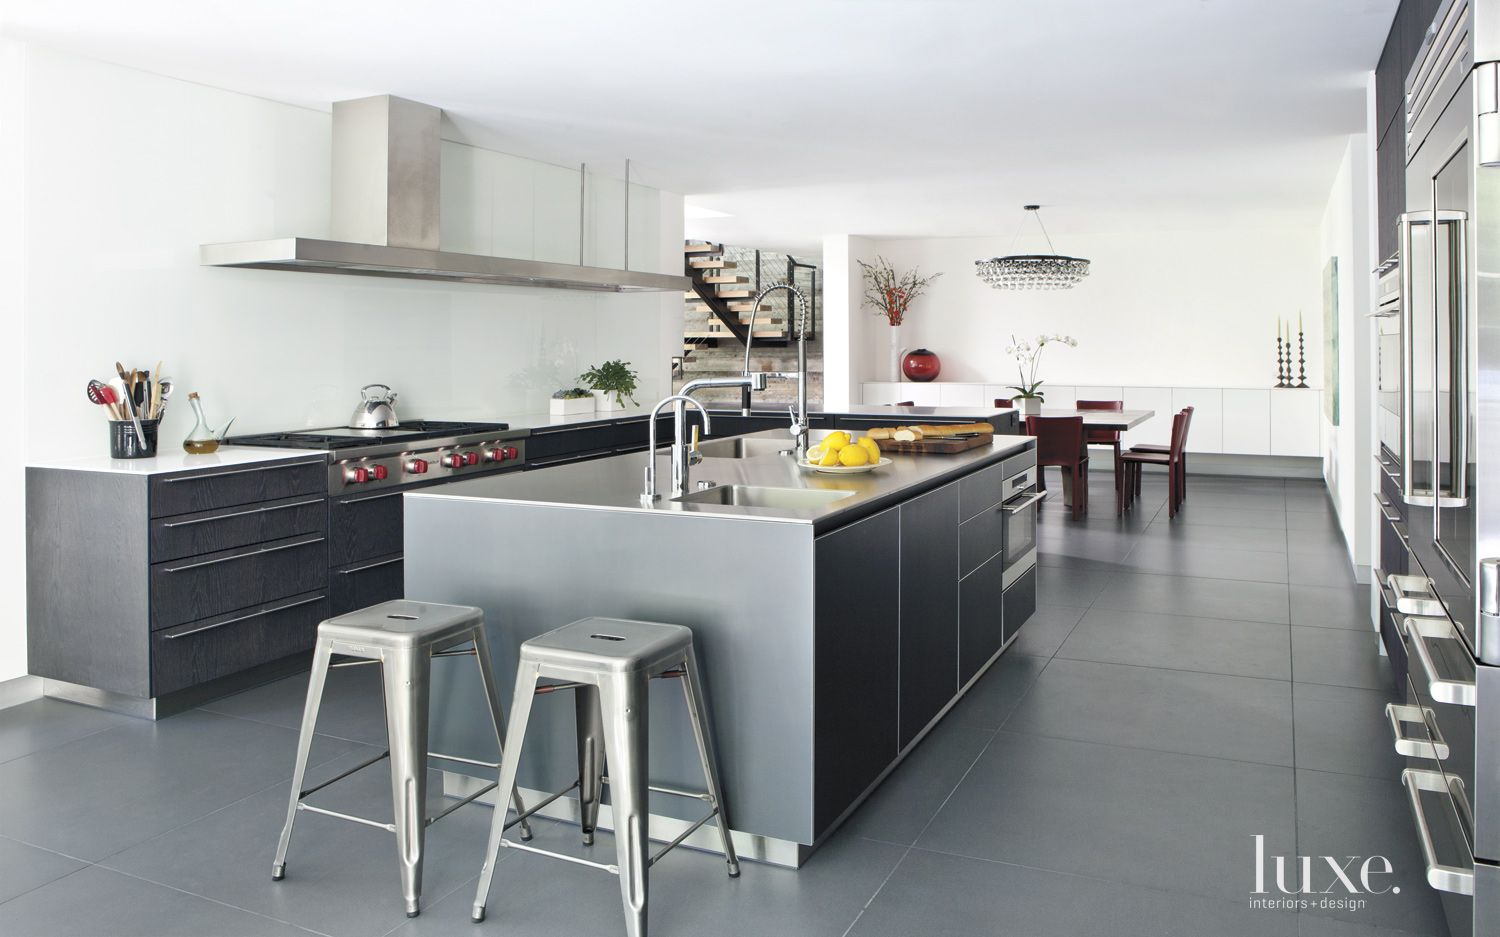 Sprawling Modern Kitchen with Floating Island